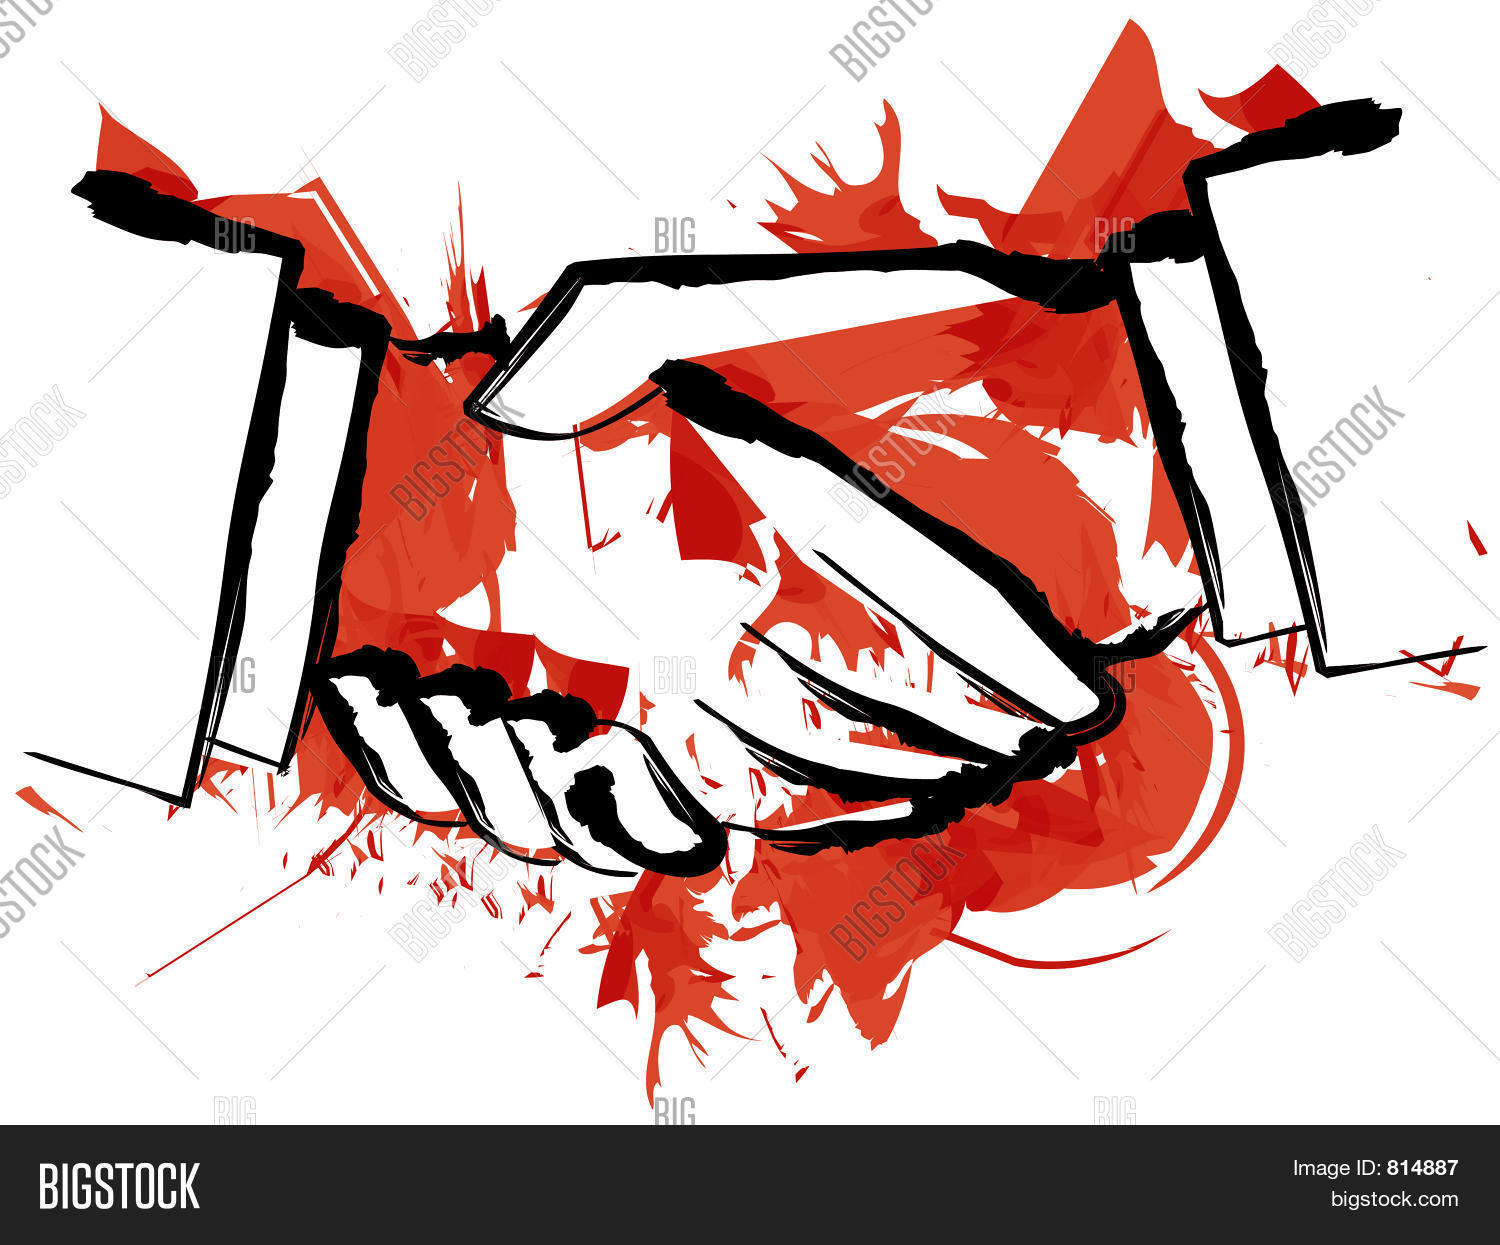 Blood Handshake Image & Photo (Free Trial) | Bigstock